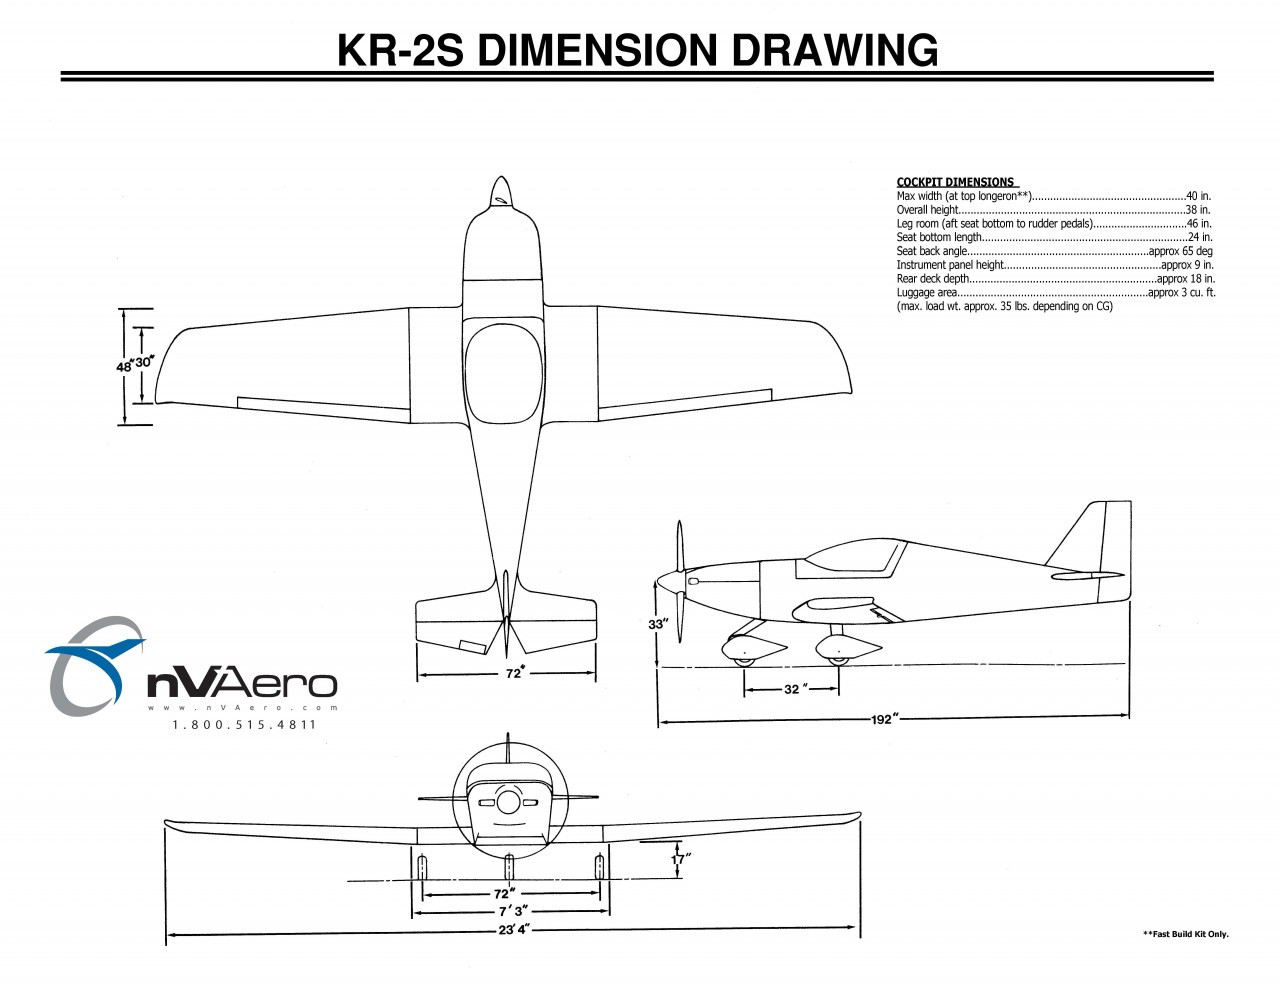 small resolution of three view drawing of kr 2s and dimensions